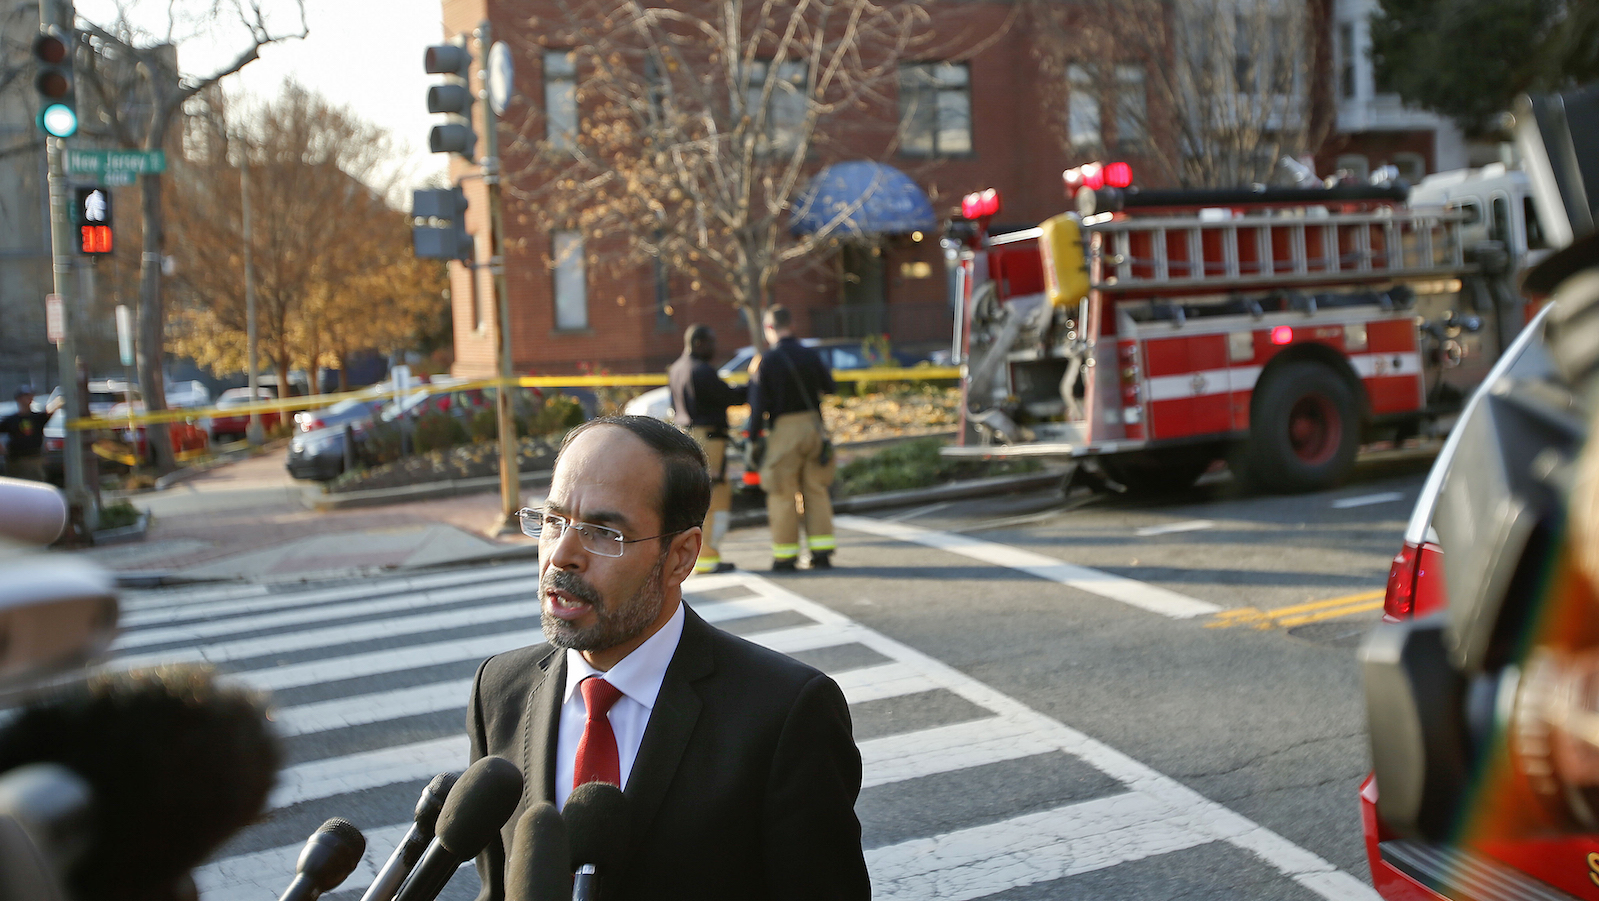 Council on American-Islamic Relations (CAIR) Executive Director and co-founder Nihad Awad speaks to members of the media as firefighters are seen in the background at CAIR headquarters on Capitol Hill in Washington, Thursday, Dec. 10, 2015, after the building was evacuated. A spokesman for a Muslim group said its headquarters on Capitol Hill have been evacuated after staffers came in contact with a suspicious substance that arrived in the mail.